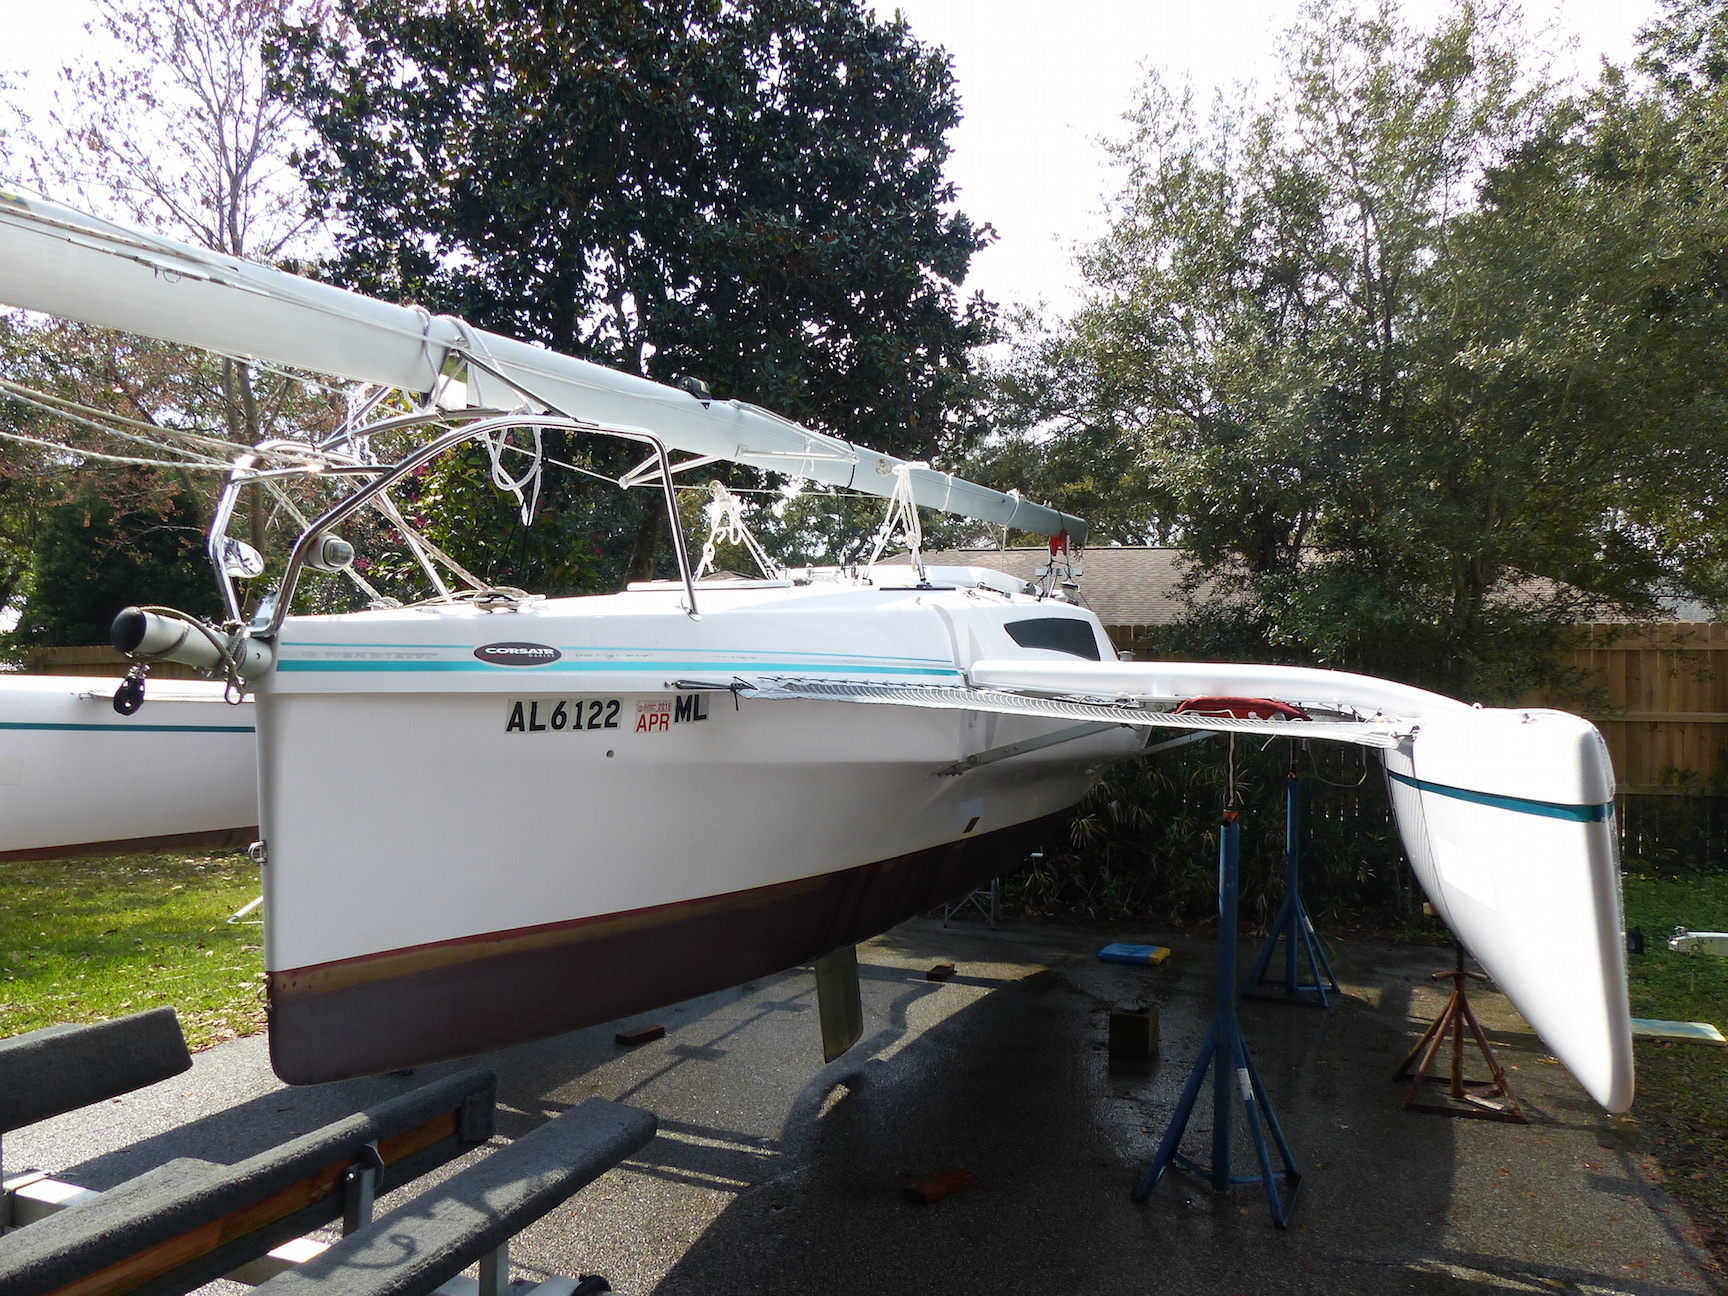 2014 Corsair Dash 750 Mk II for sale in Navarre, FL, Immaculate $59,900